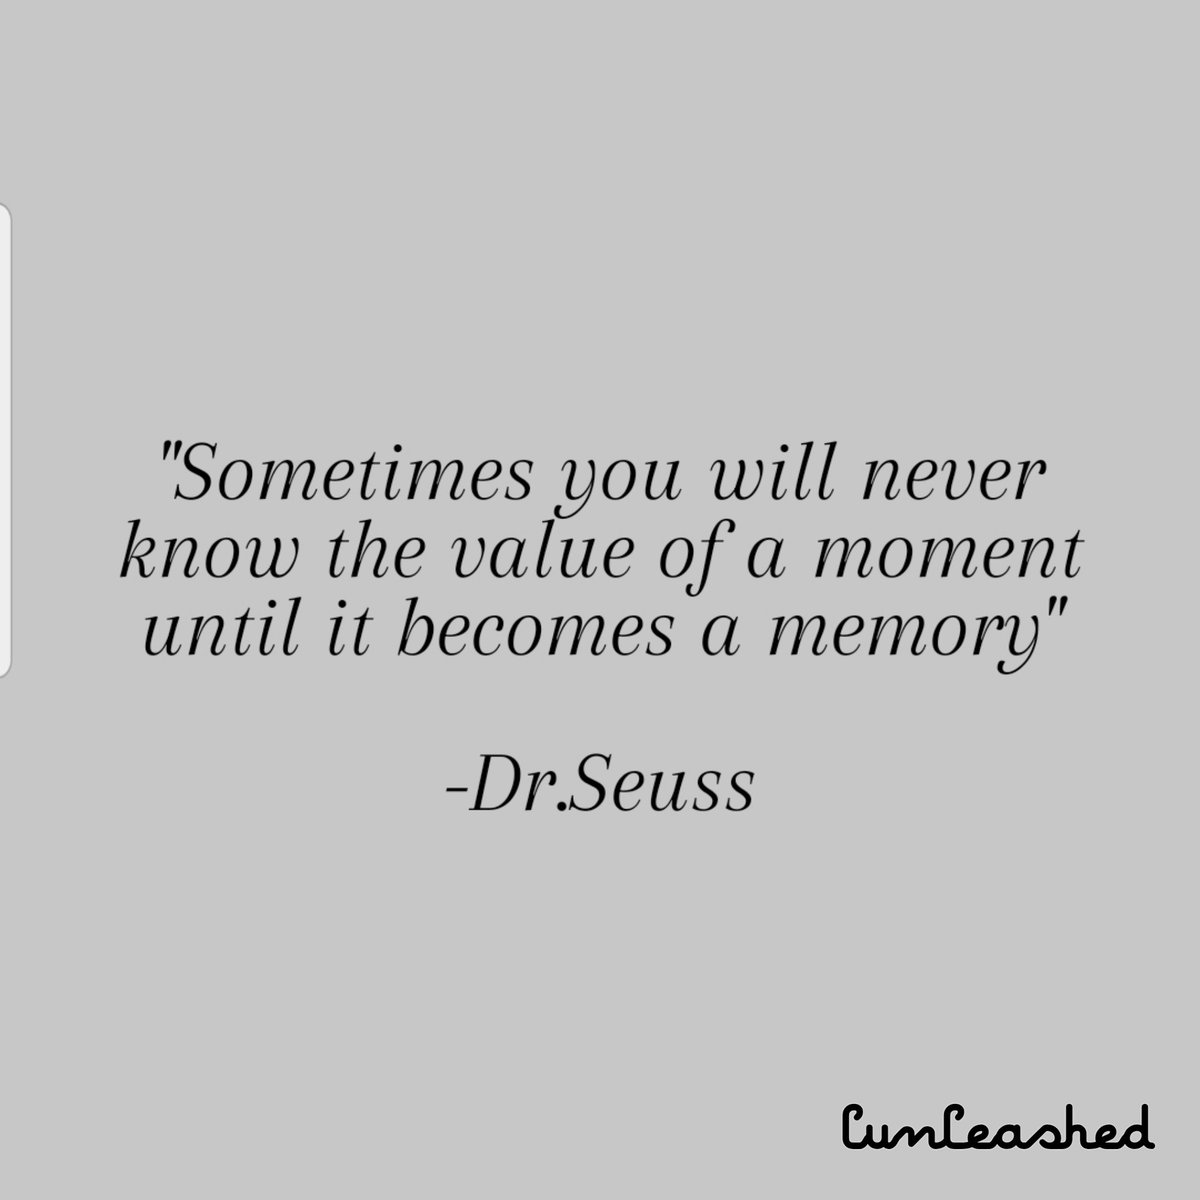 """Sometimes you will never know the value of a moment until it becomes a memory""  #DrSeuss #InspirationalQuotes #LNoteToSelf #DailyQuotes #InspiringLAYours #LSoarSeptember https://t.co/eOOHZzZQ0T"